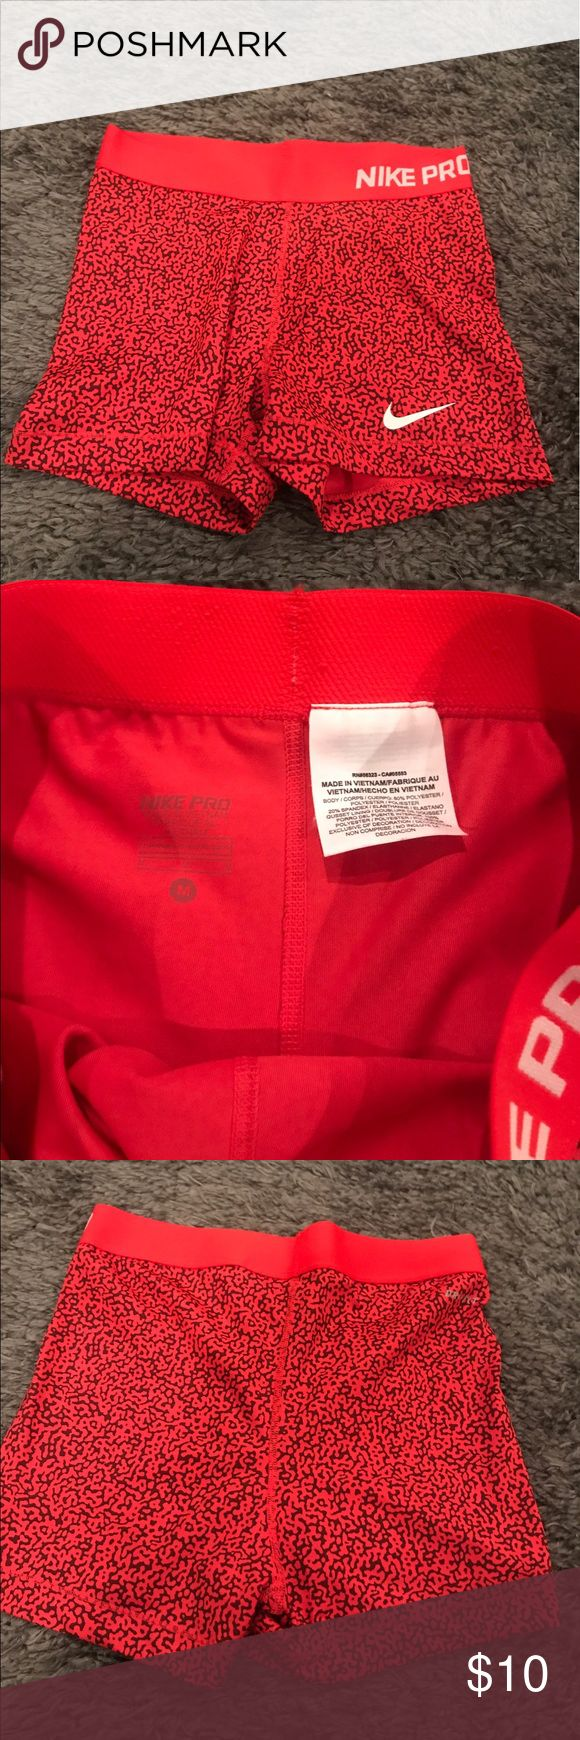 Nike Dri Fit red spotted spandex shorts Perfect condition, only worn once Nike Shorts